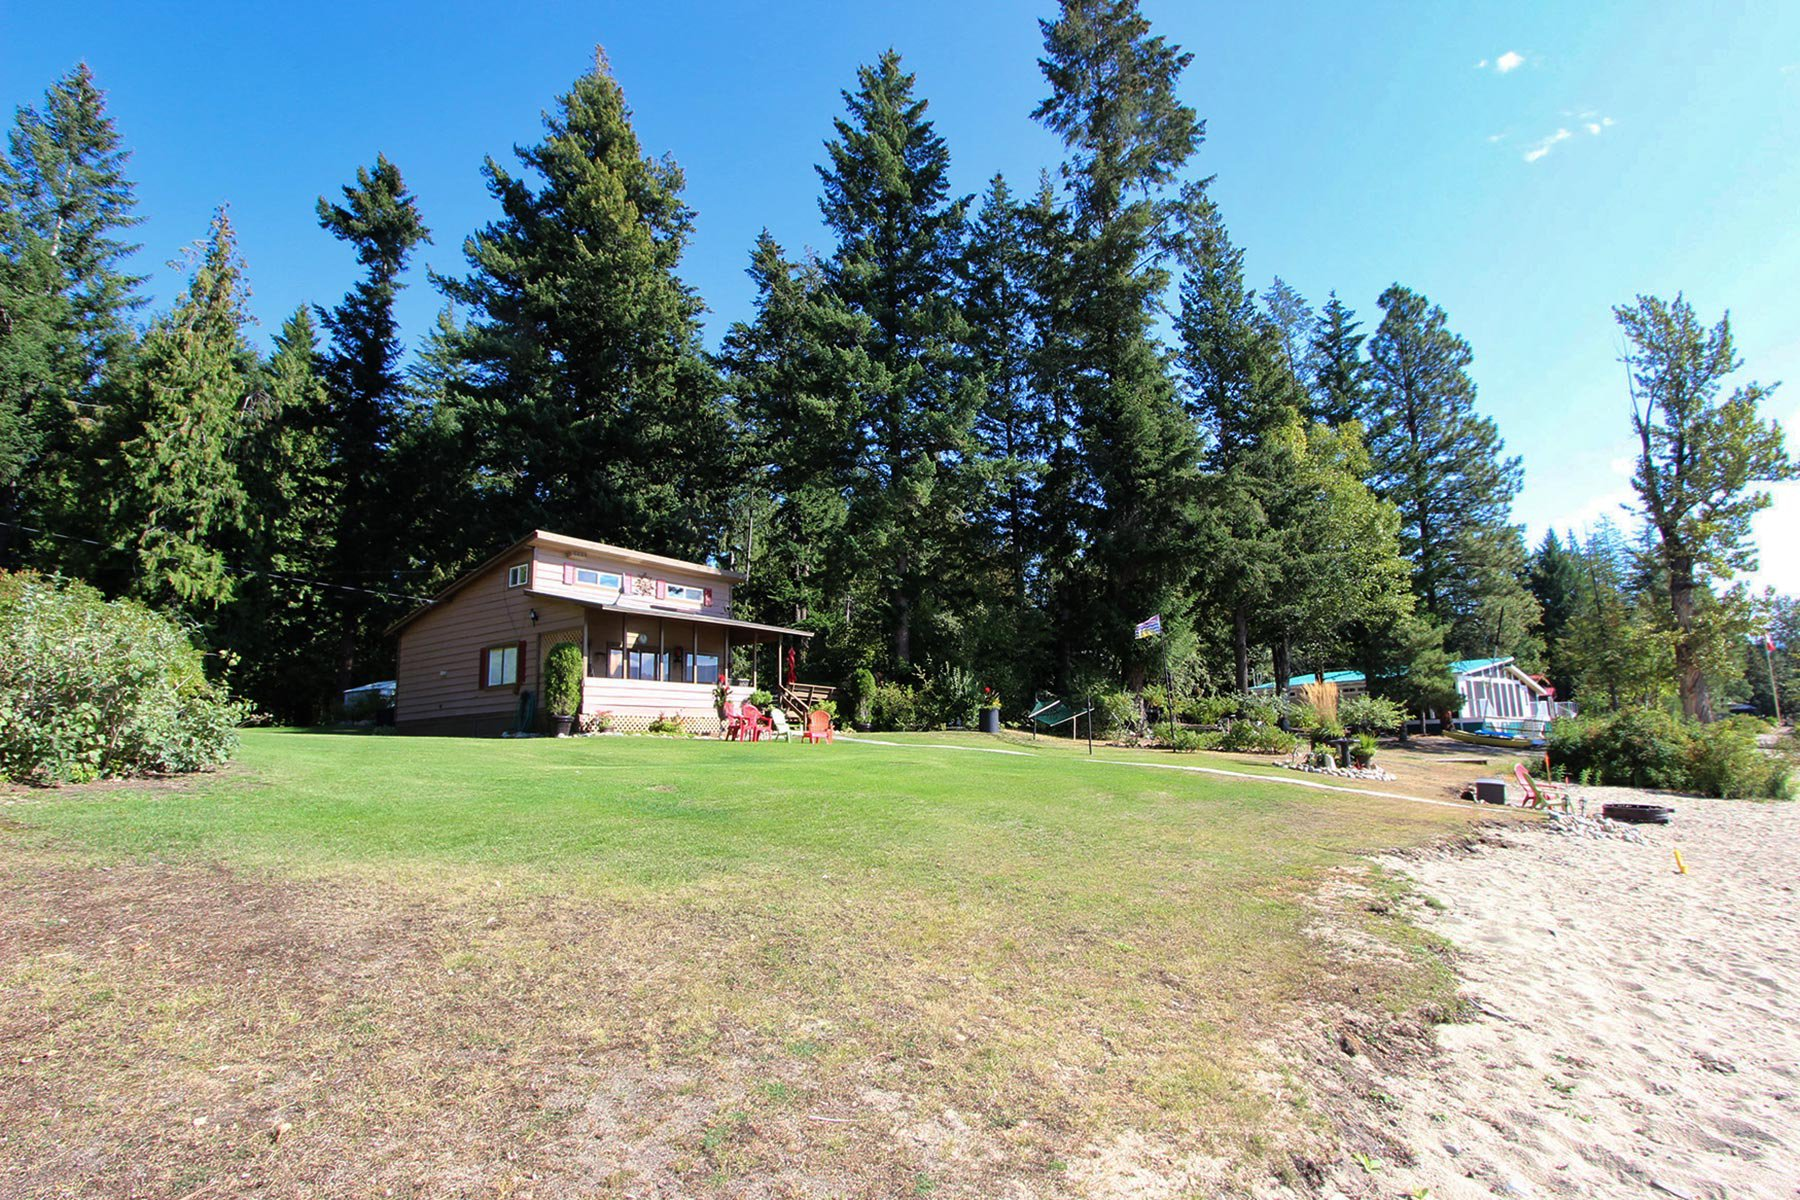 Photo 7: Photos: 3620 Hilliam Frontage Road in Scotch Creek: House for sale : MLS®# 10217240